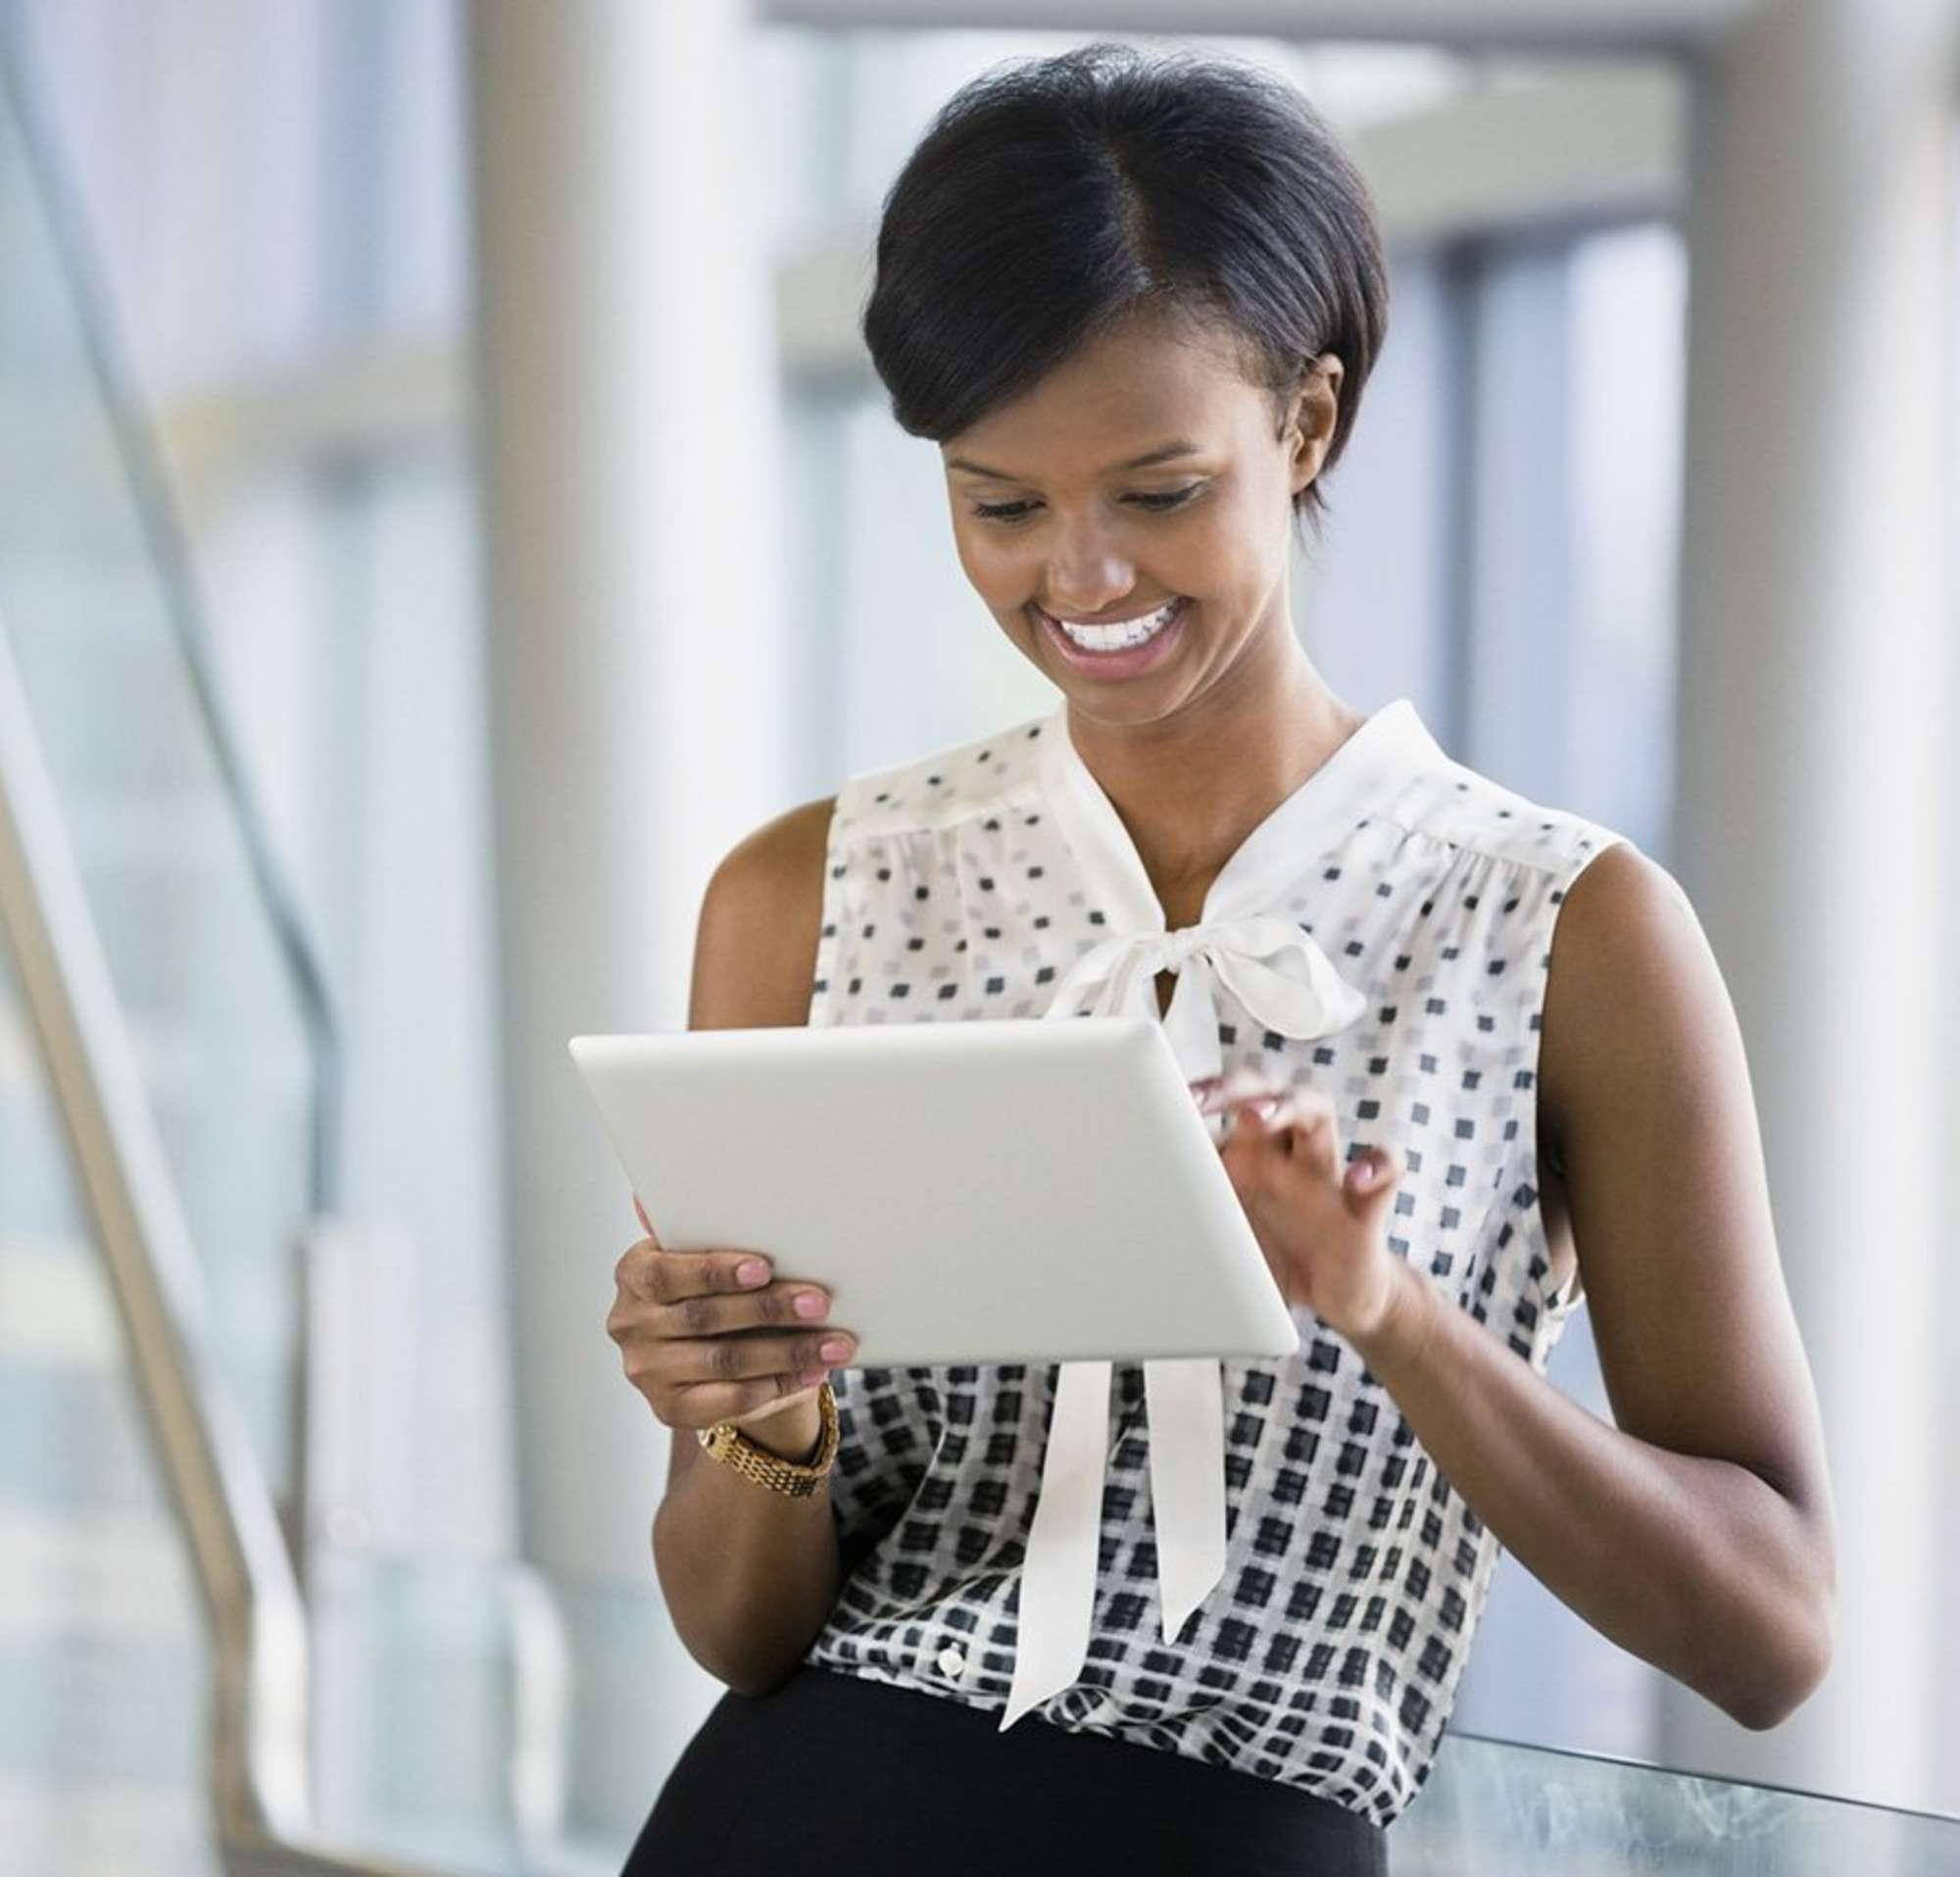 Sign a document online and on-the-go